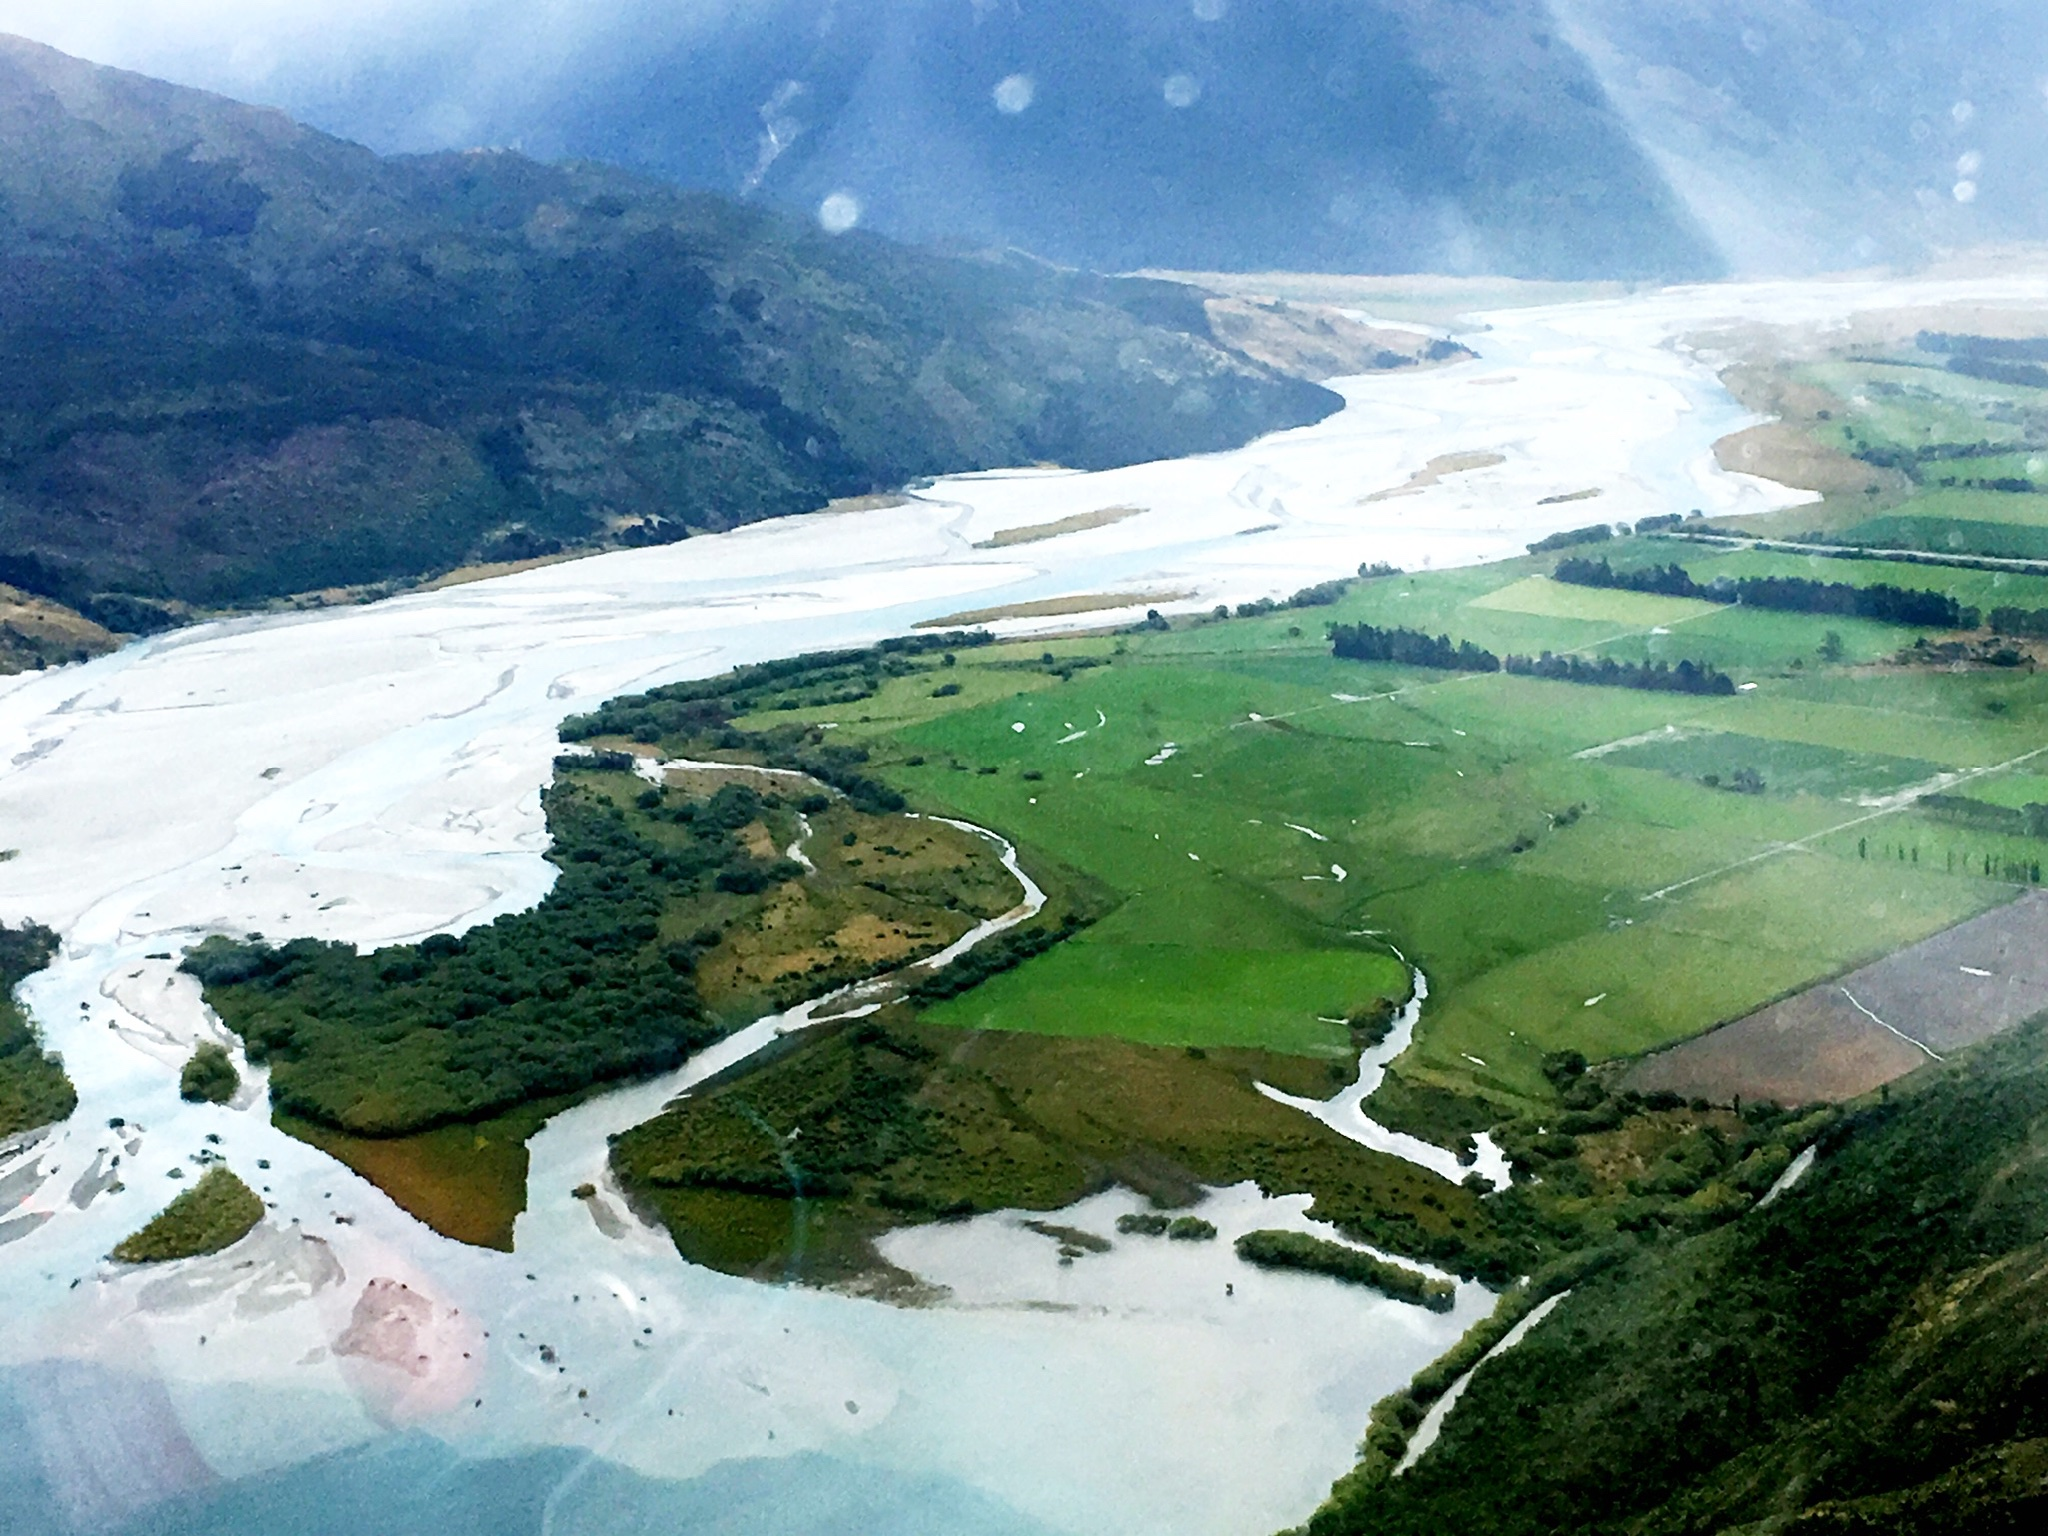 Returning by helicopter to Cedar Lodge, South Island, New Zealand